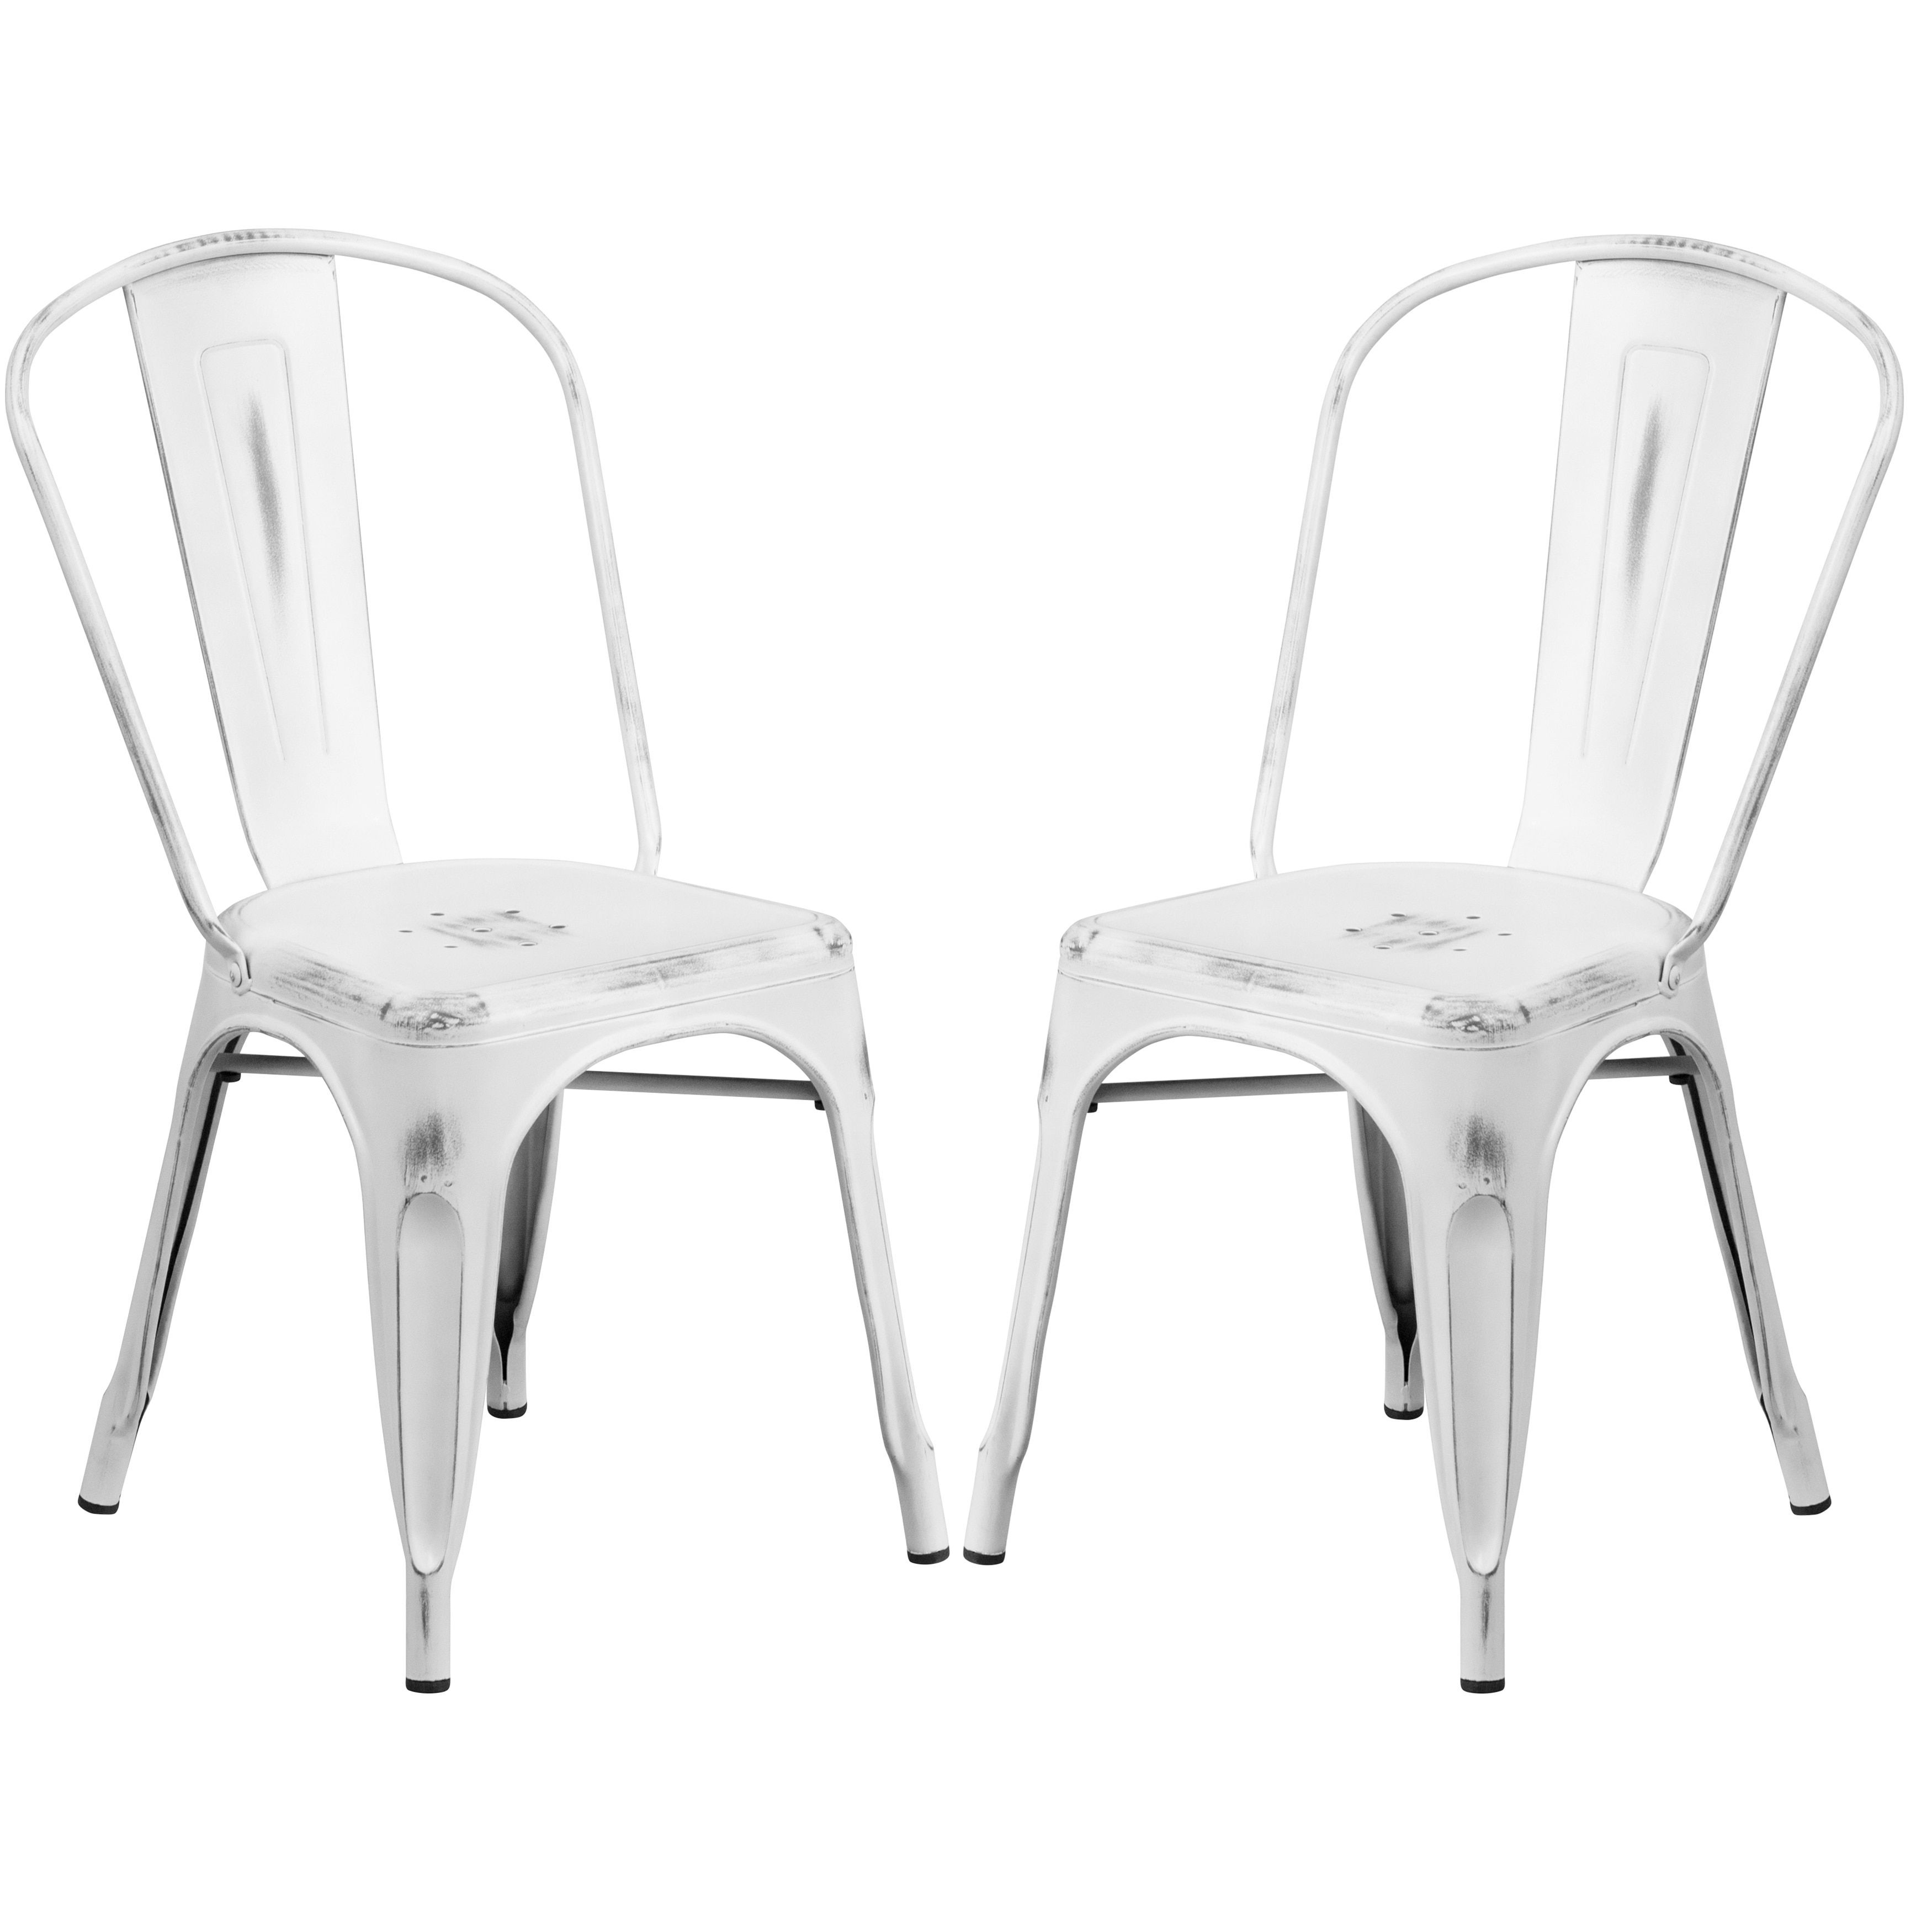 White Distressed Metal Bistro Style Chair 4 Chairs Patio